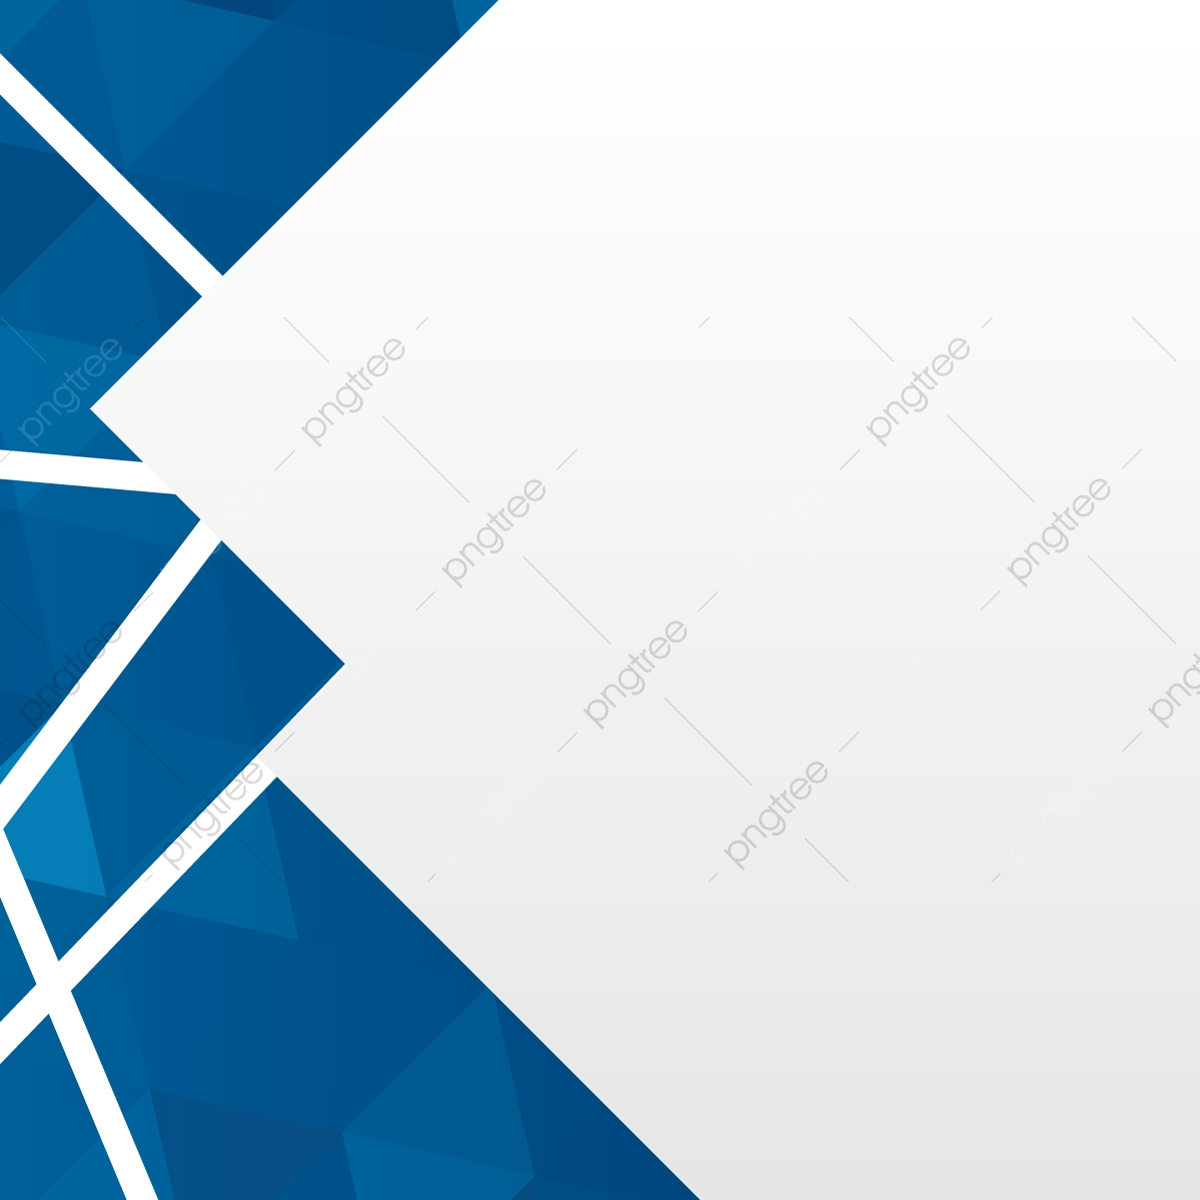 Geometric Backgrounc With Blue Polygons Vector, Azure